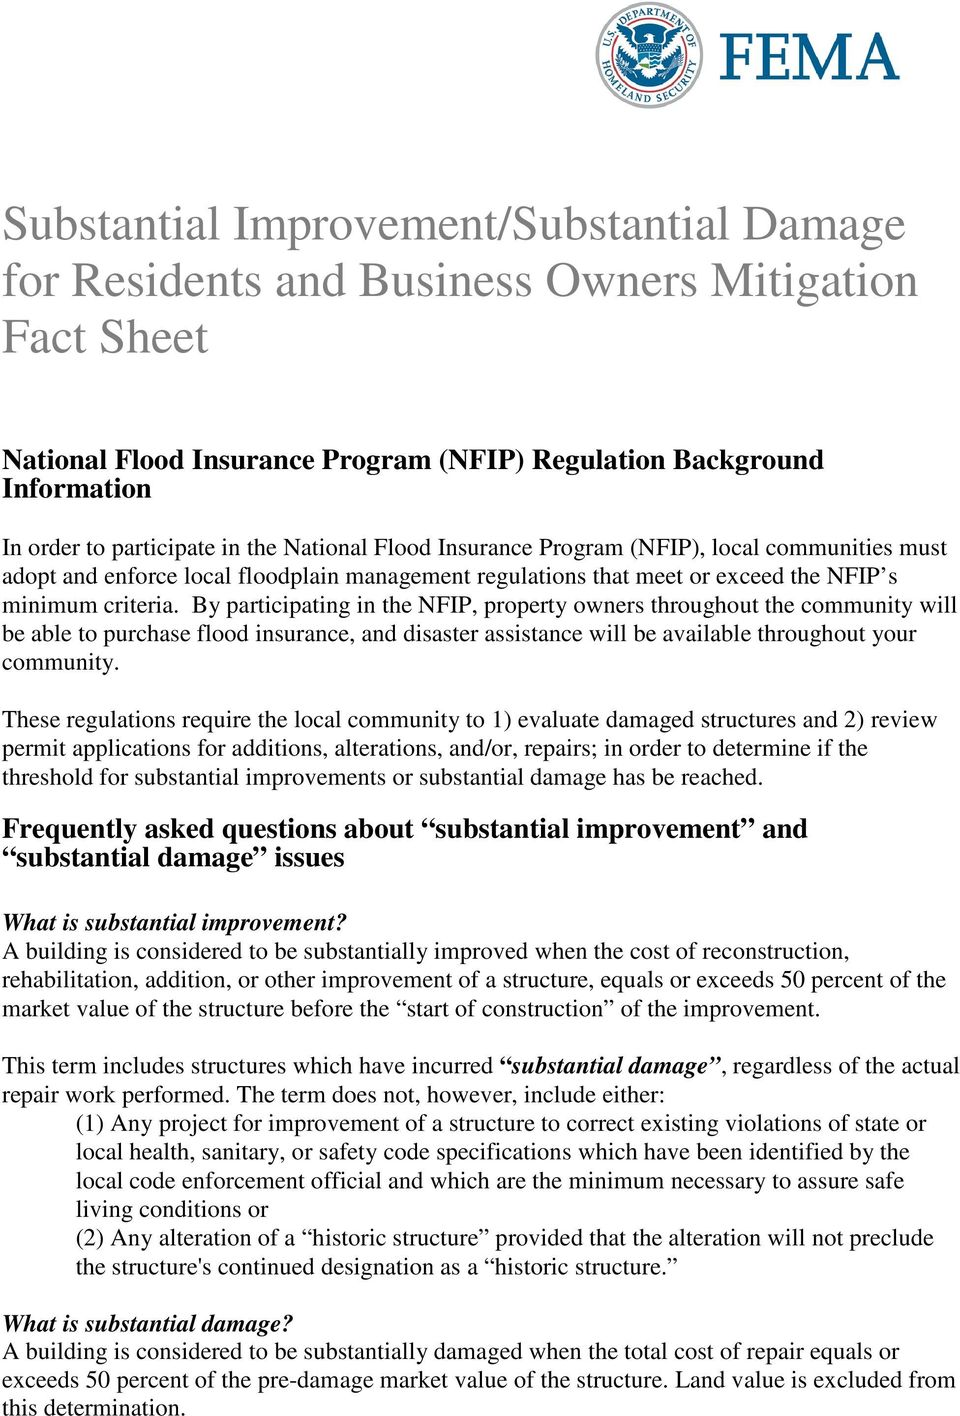 By participating in the NFIP, property owners throughout the community will be able to purchase flood insurance, and disaster assistance will be available throughout your community.